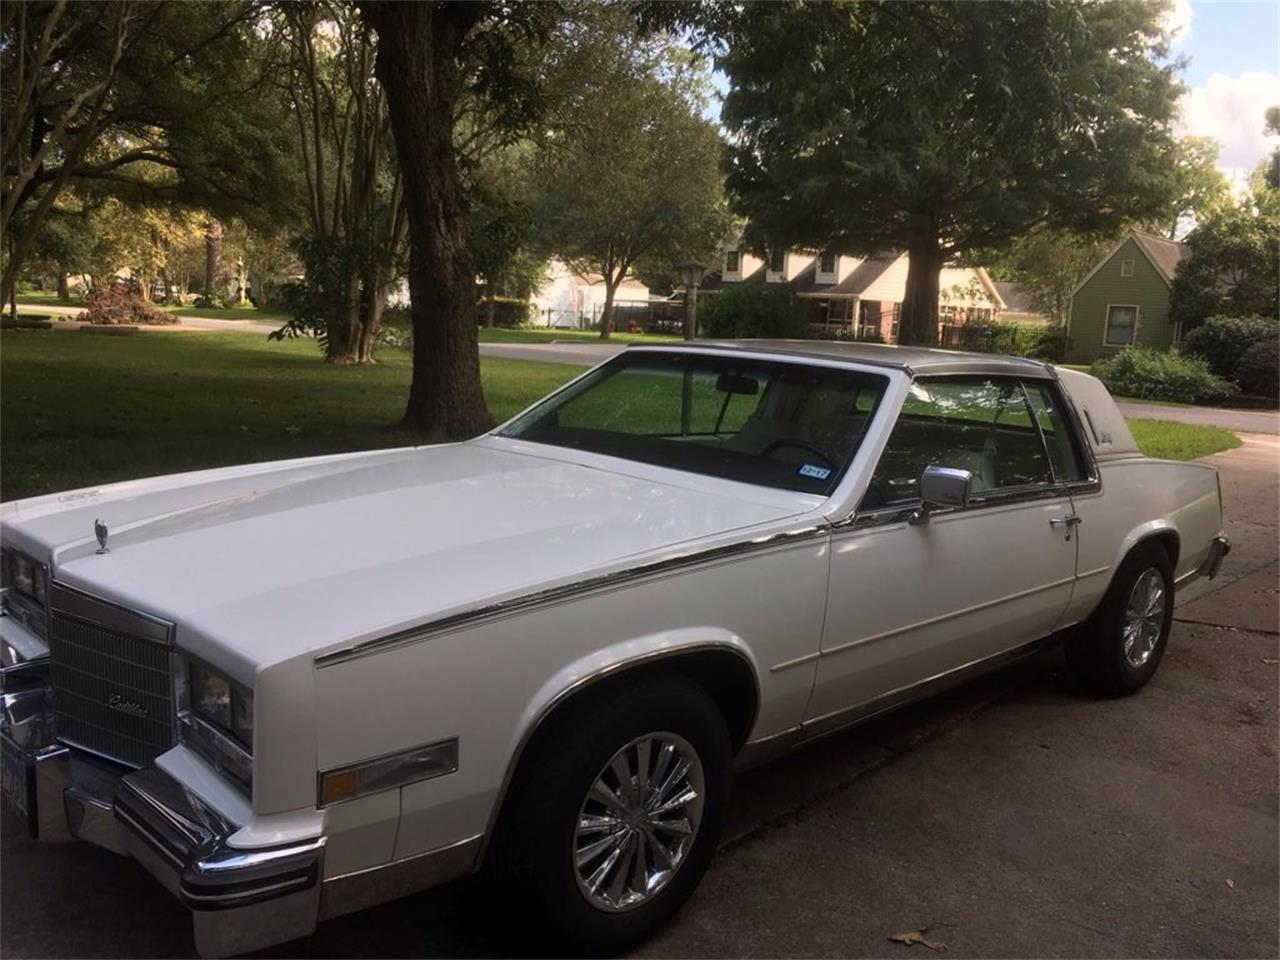 Large Picture of 1985 Cadillac Eldorado Biarritz located in Houston Texas - $12,500.00 - ODYU